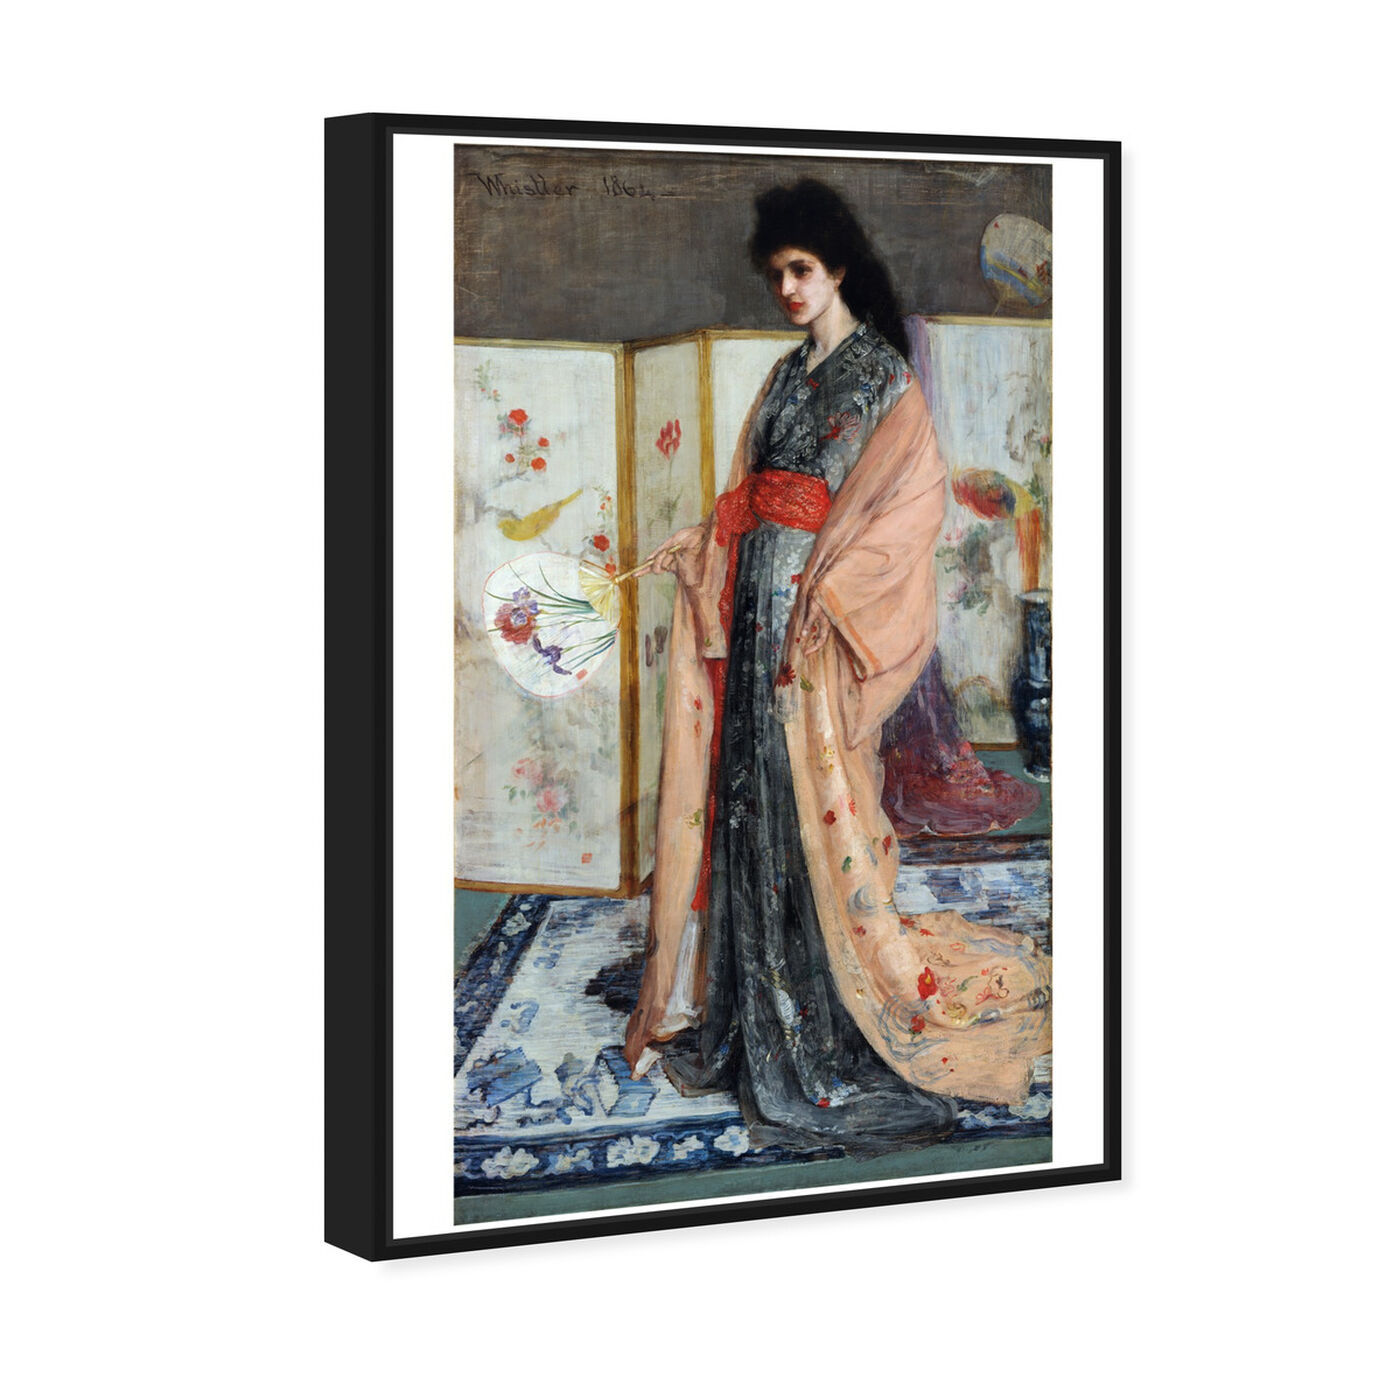 Angled view of Whistler - La Princesse Du Pays De La Porcelaine featuring classic and figurative and classical figures art.